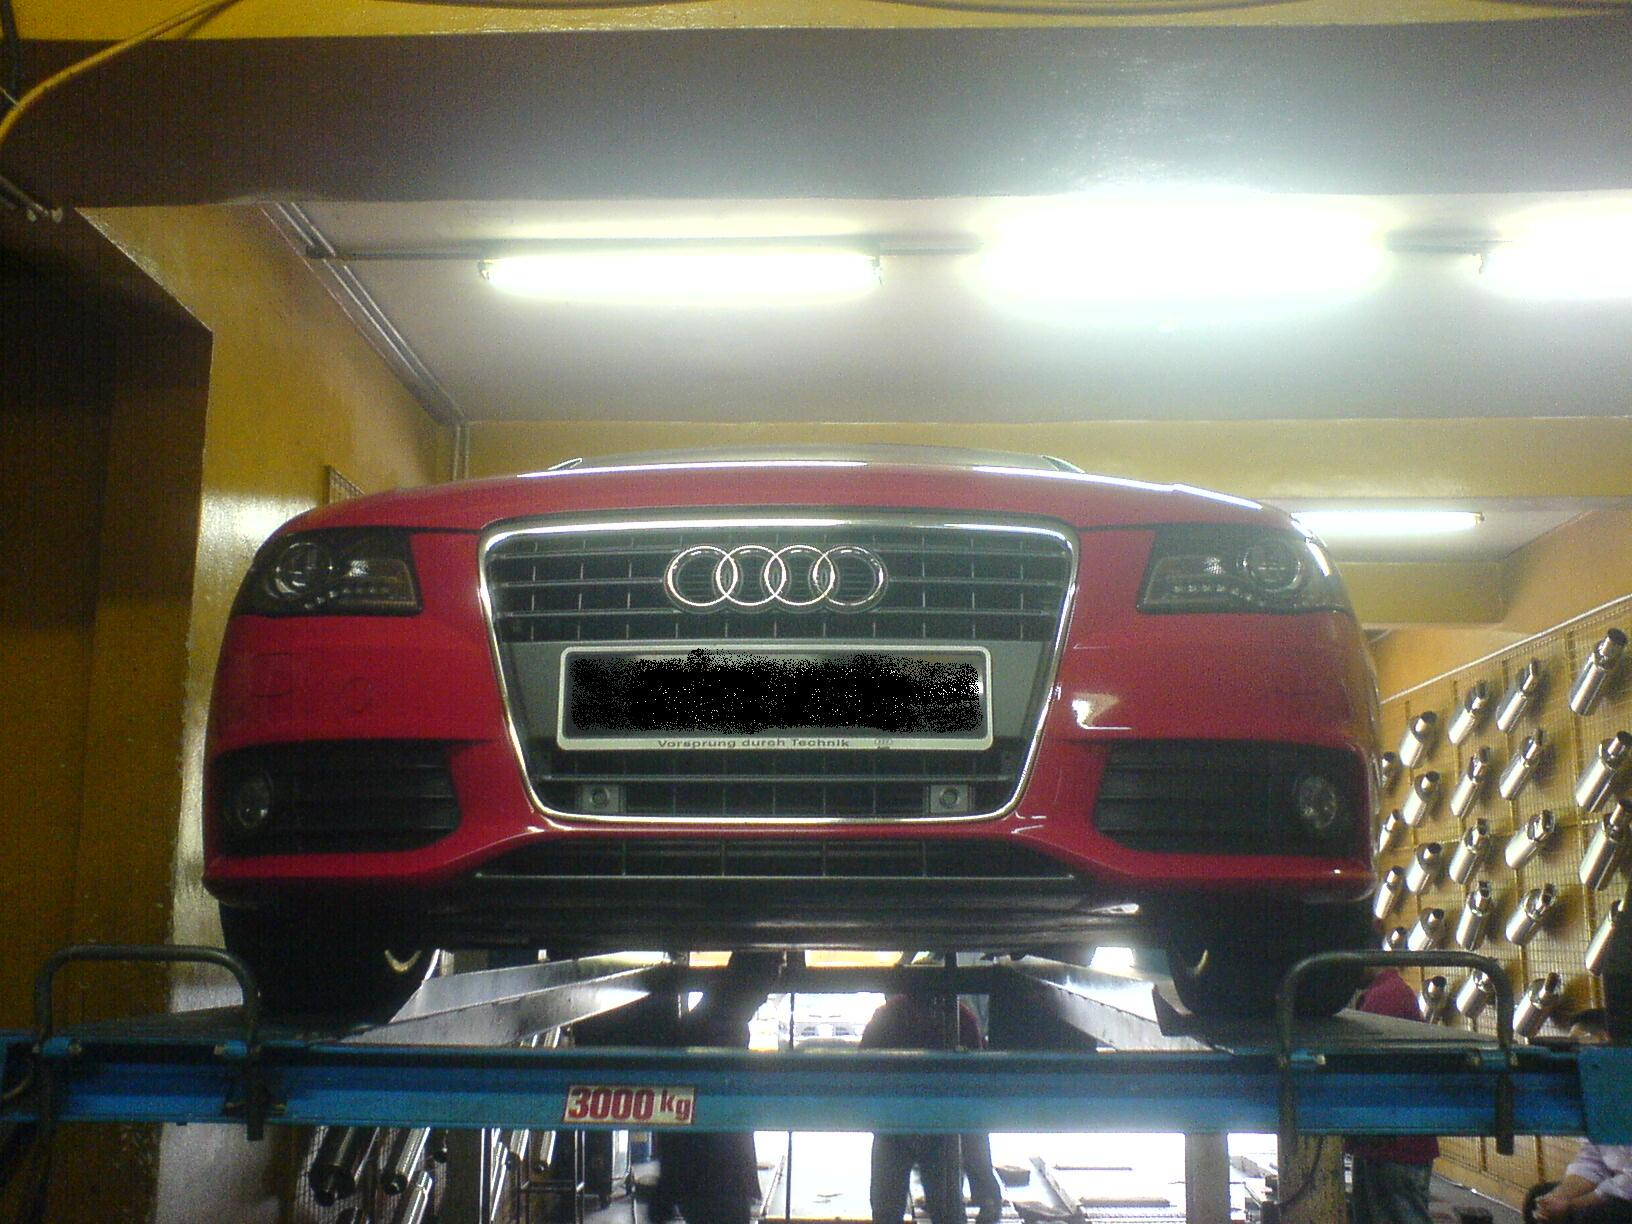 Audi A4 18tfsi Tuning The Space Station Gets A New Exhaust System